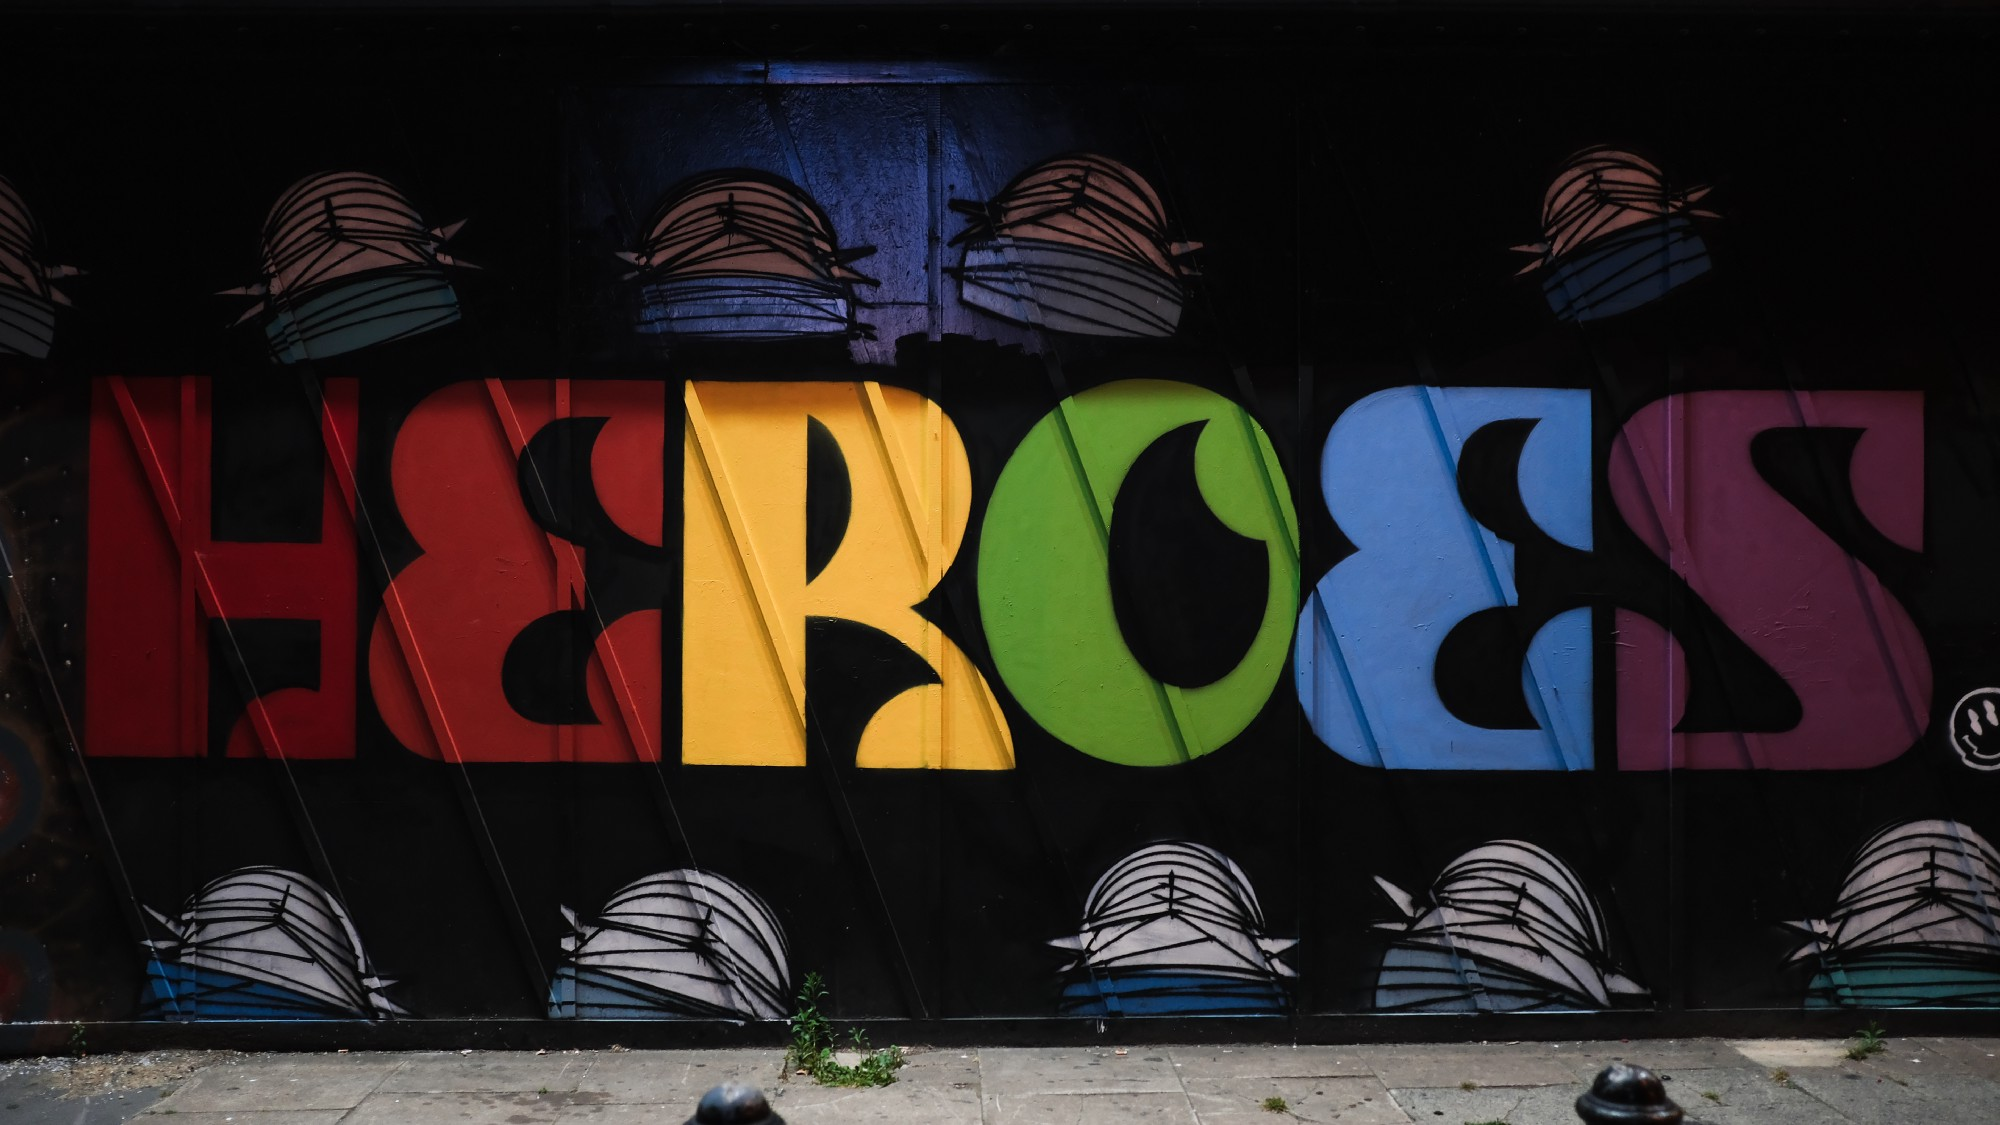 Multicolored letters spell out HEROES on a black background, with a border of hats or masks at top and bottom.